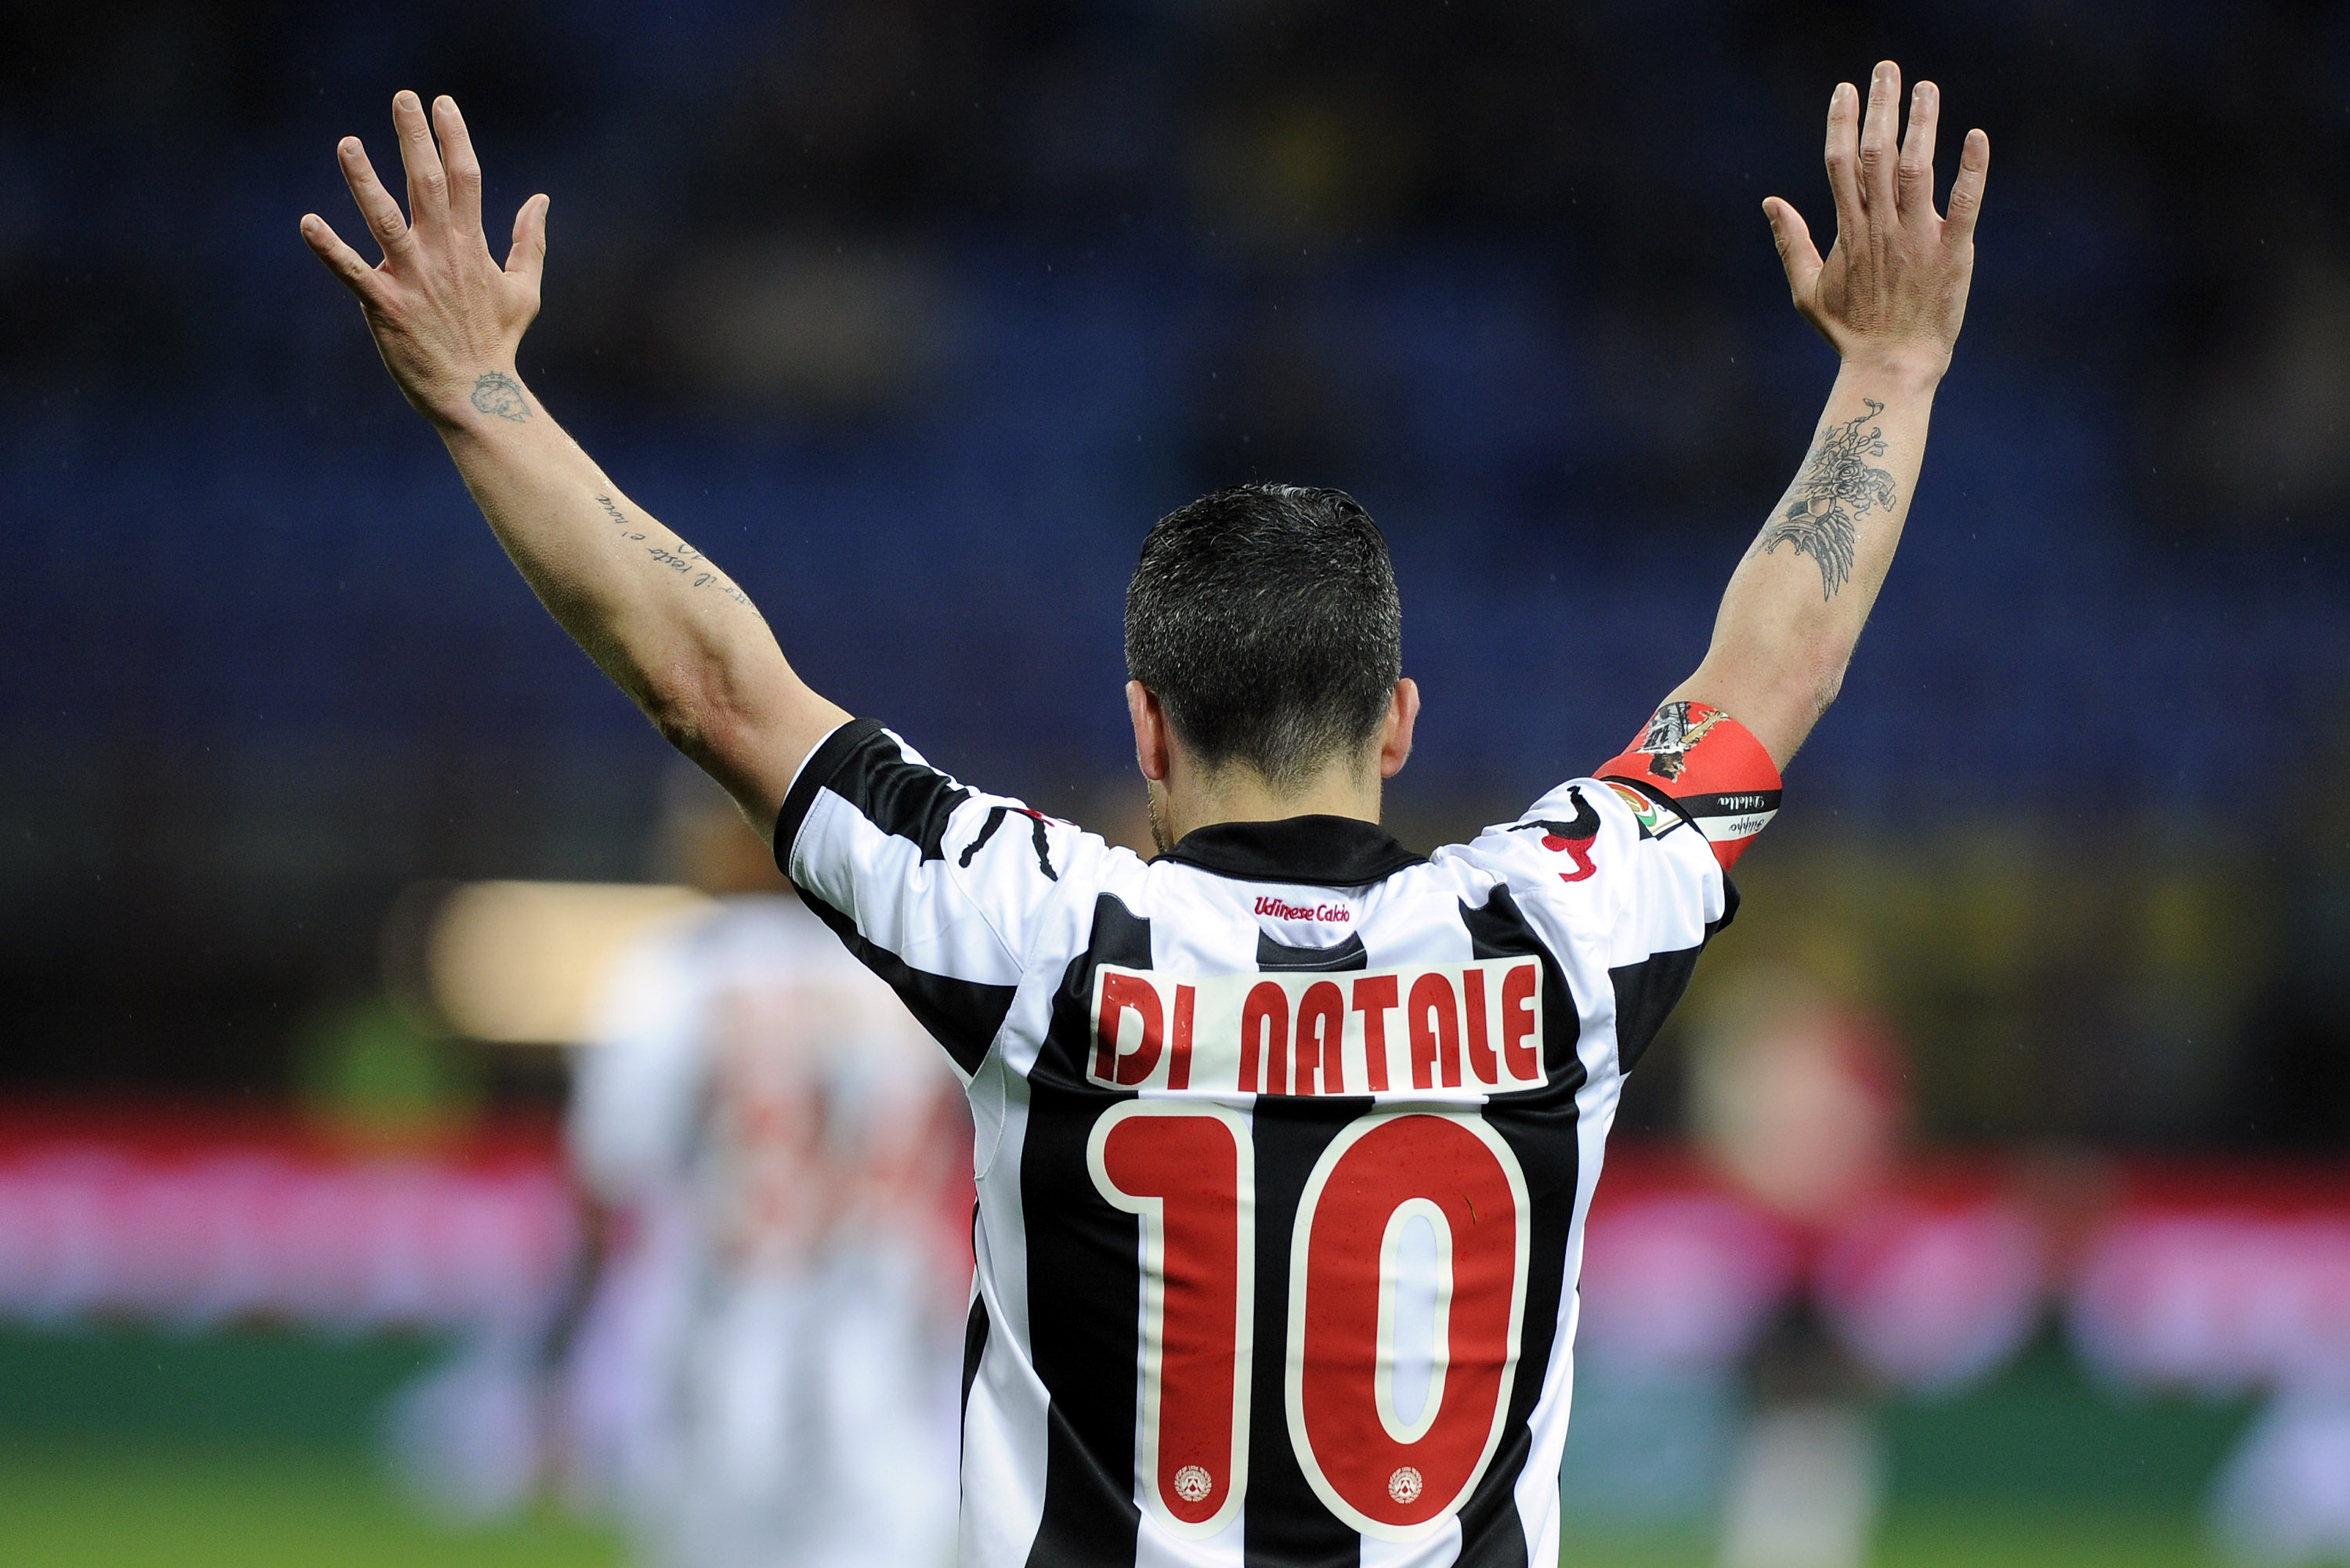 Antonio Di Natale.Udinese Captain Antonio Di Natale A Man To Admire A Striker To Fear Bleacher Report Latest News Videos And Highlights